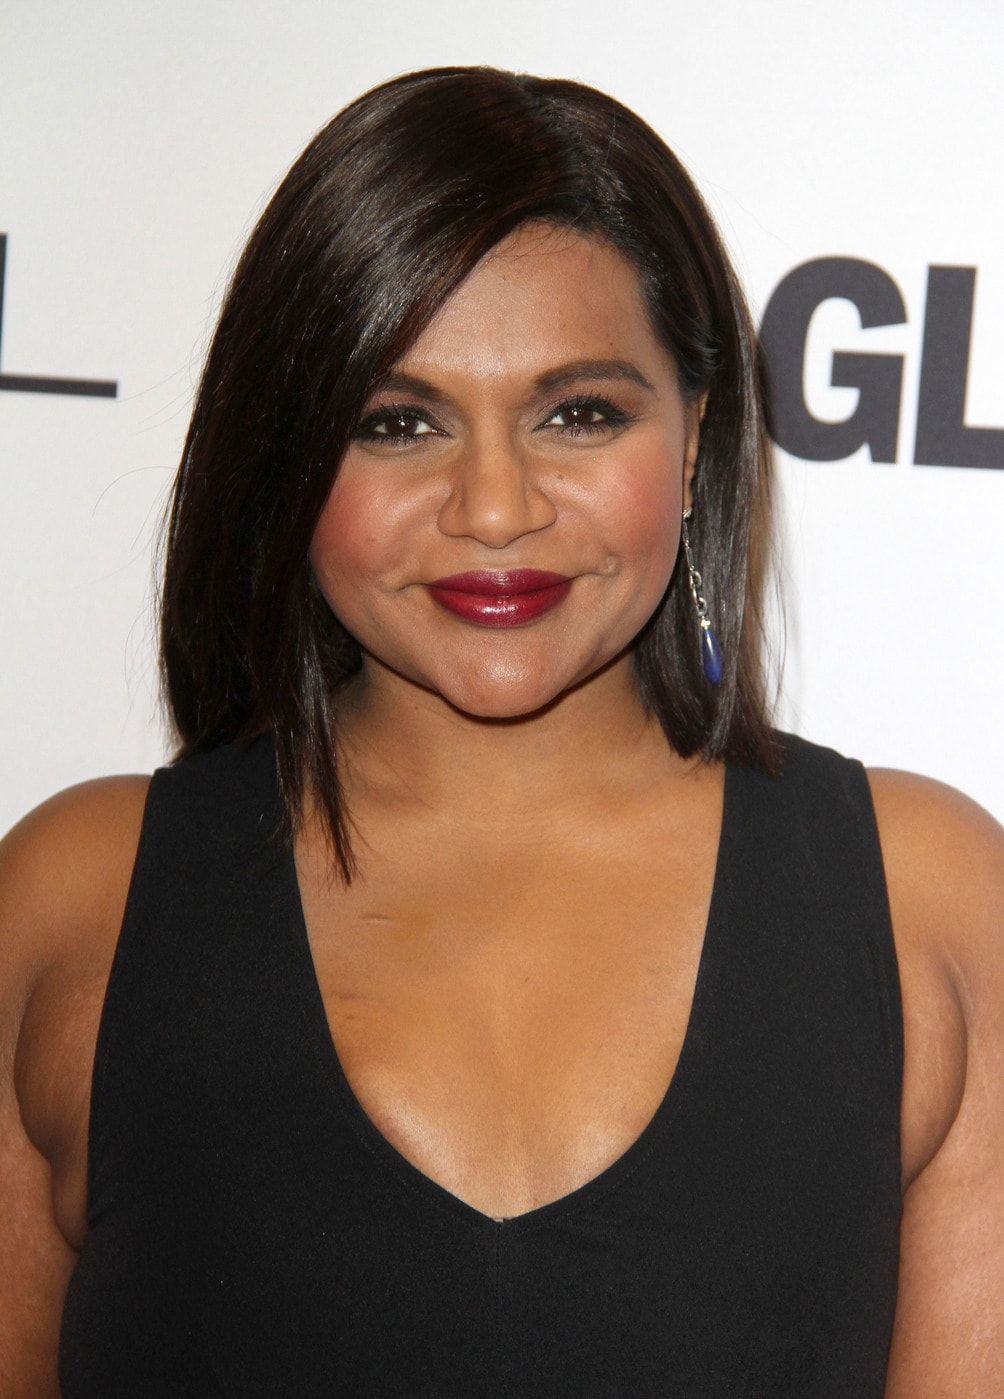 Mindy Kaling at the Glamour Women of the Year Awards